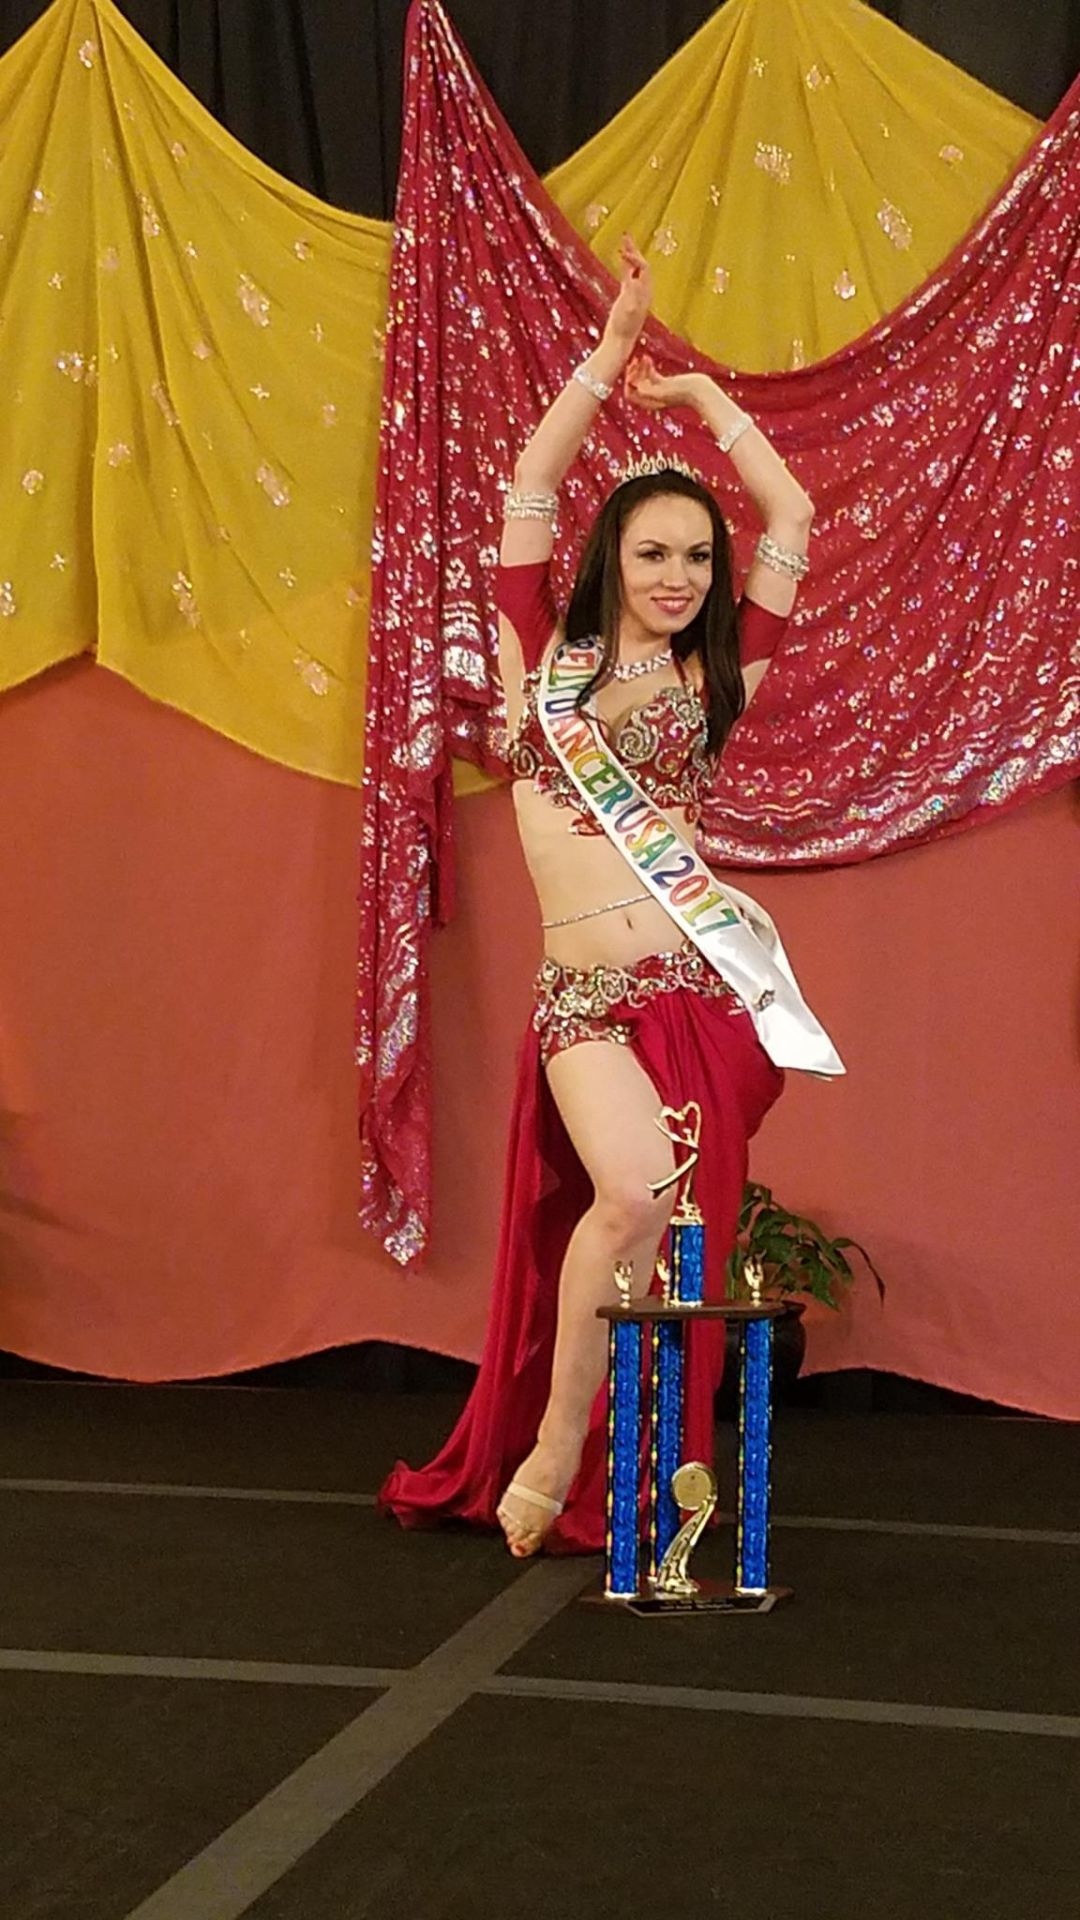 Zhanna wins title of Belly Dancer USA 2017